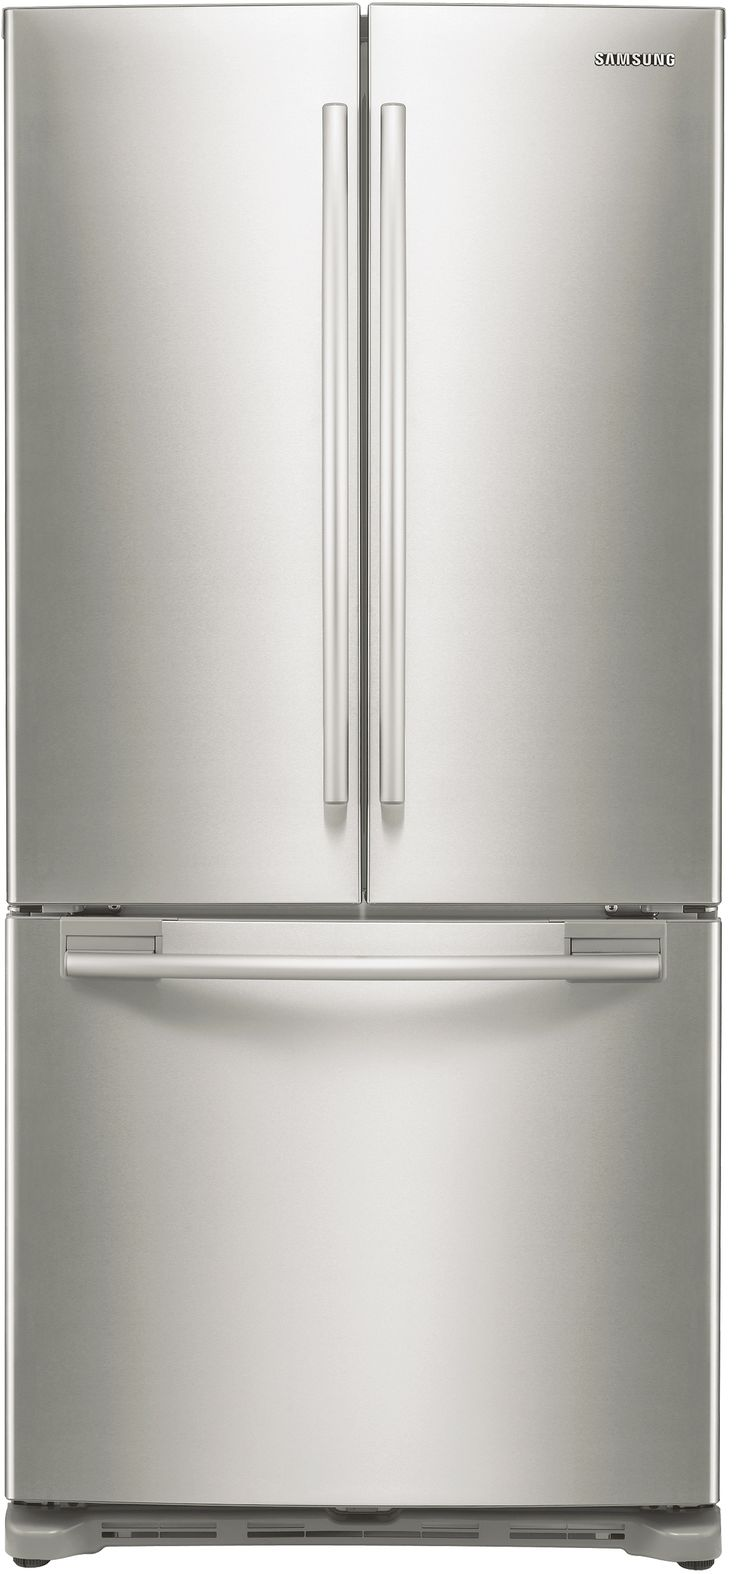 Samsung - RF18HFENBSR - 18 cu. ft. Capacity Counter Depth French Door Refrigerator Stainless Steel | Sears Outlet